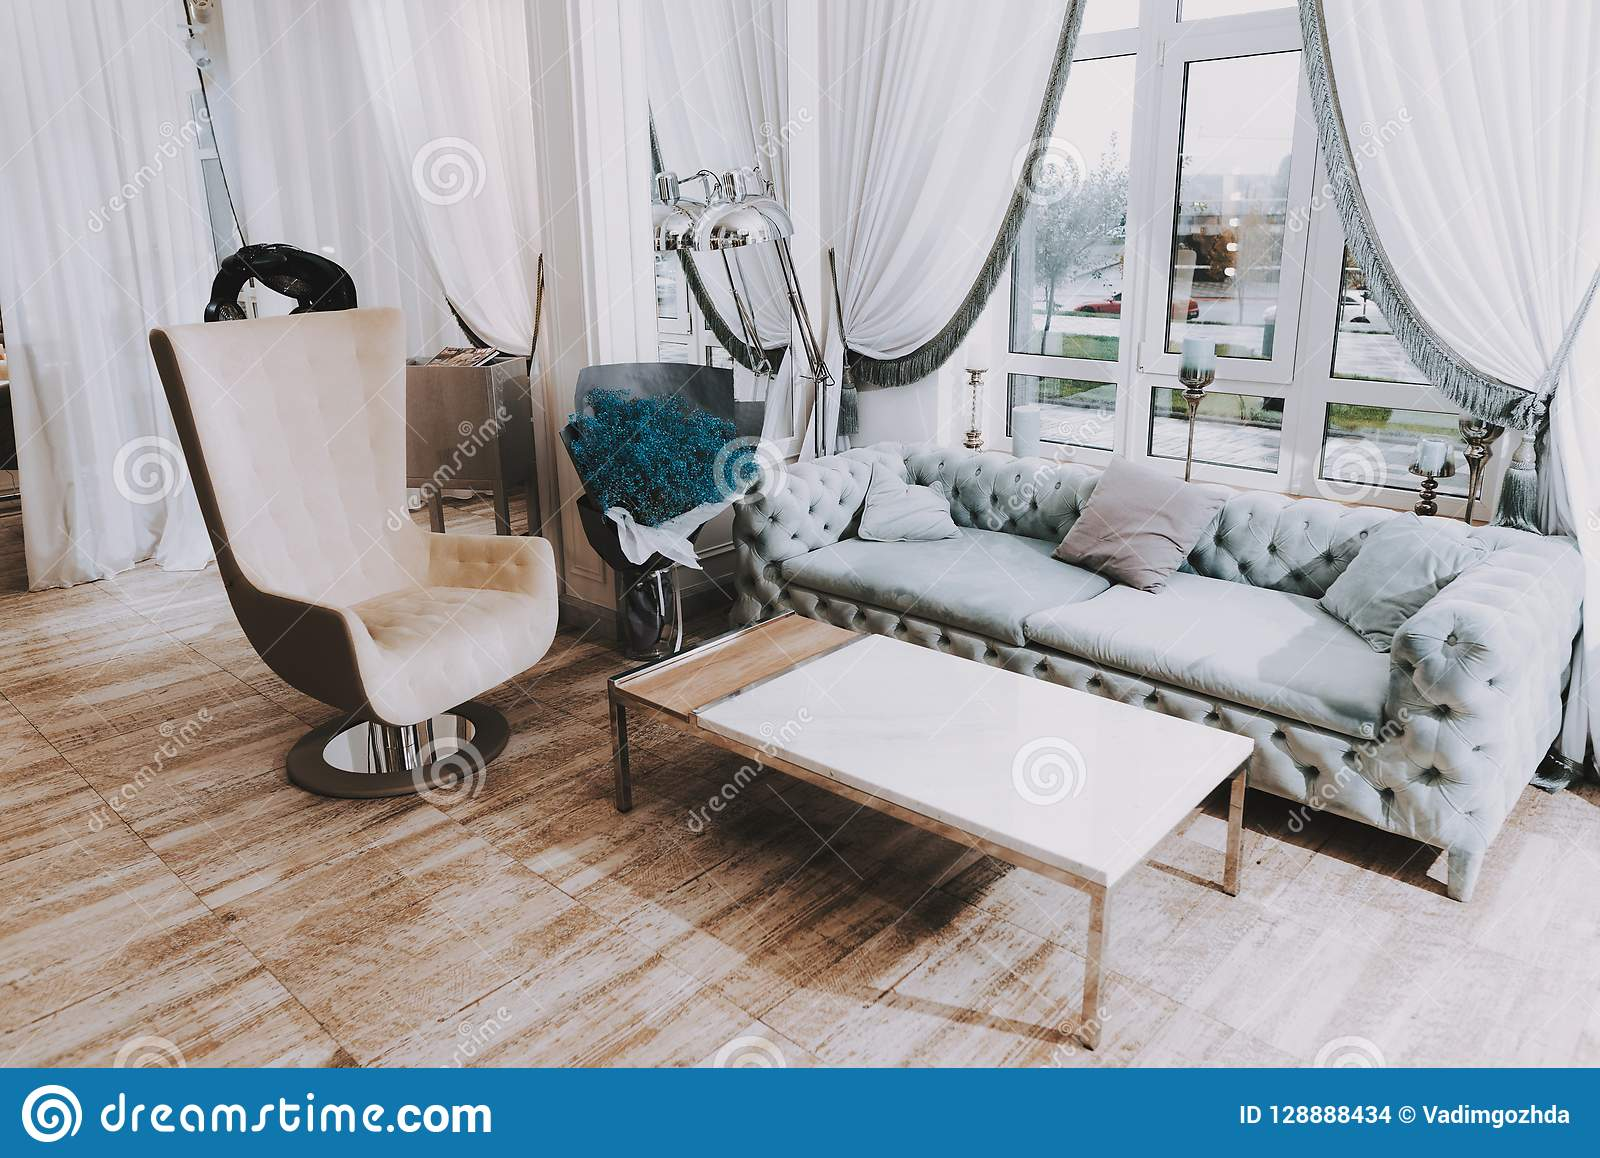 Sofa W Salonie Holl With Blue Sofa And Big Window In Beauty Salon Stock Photo